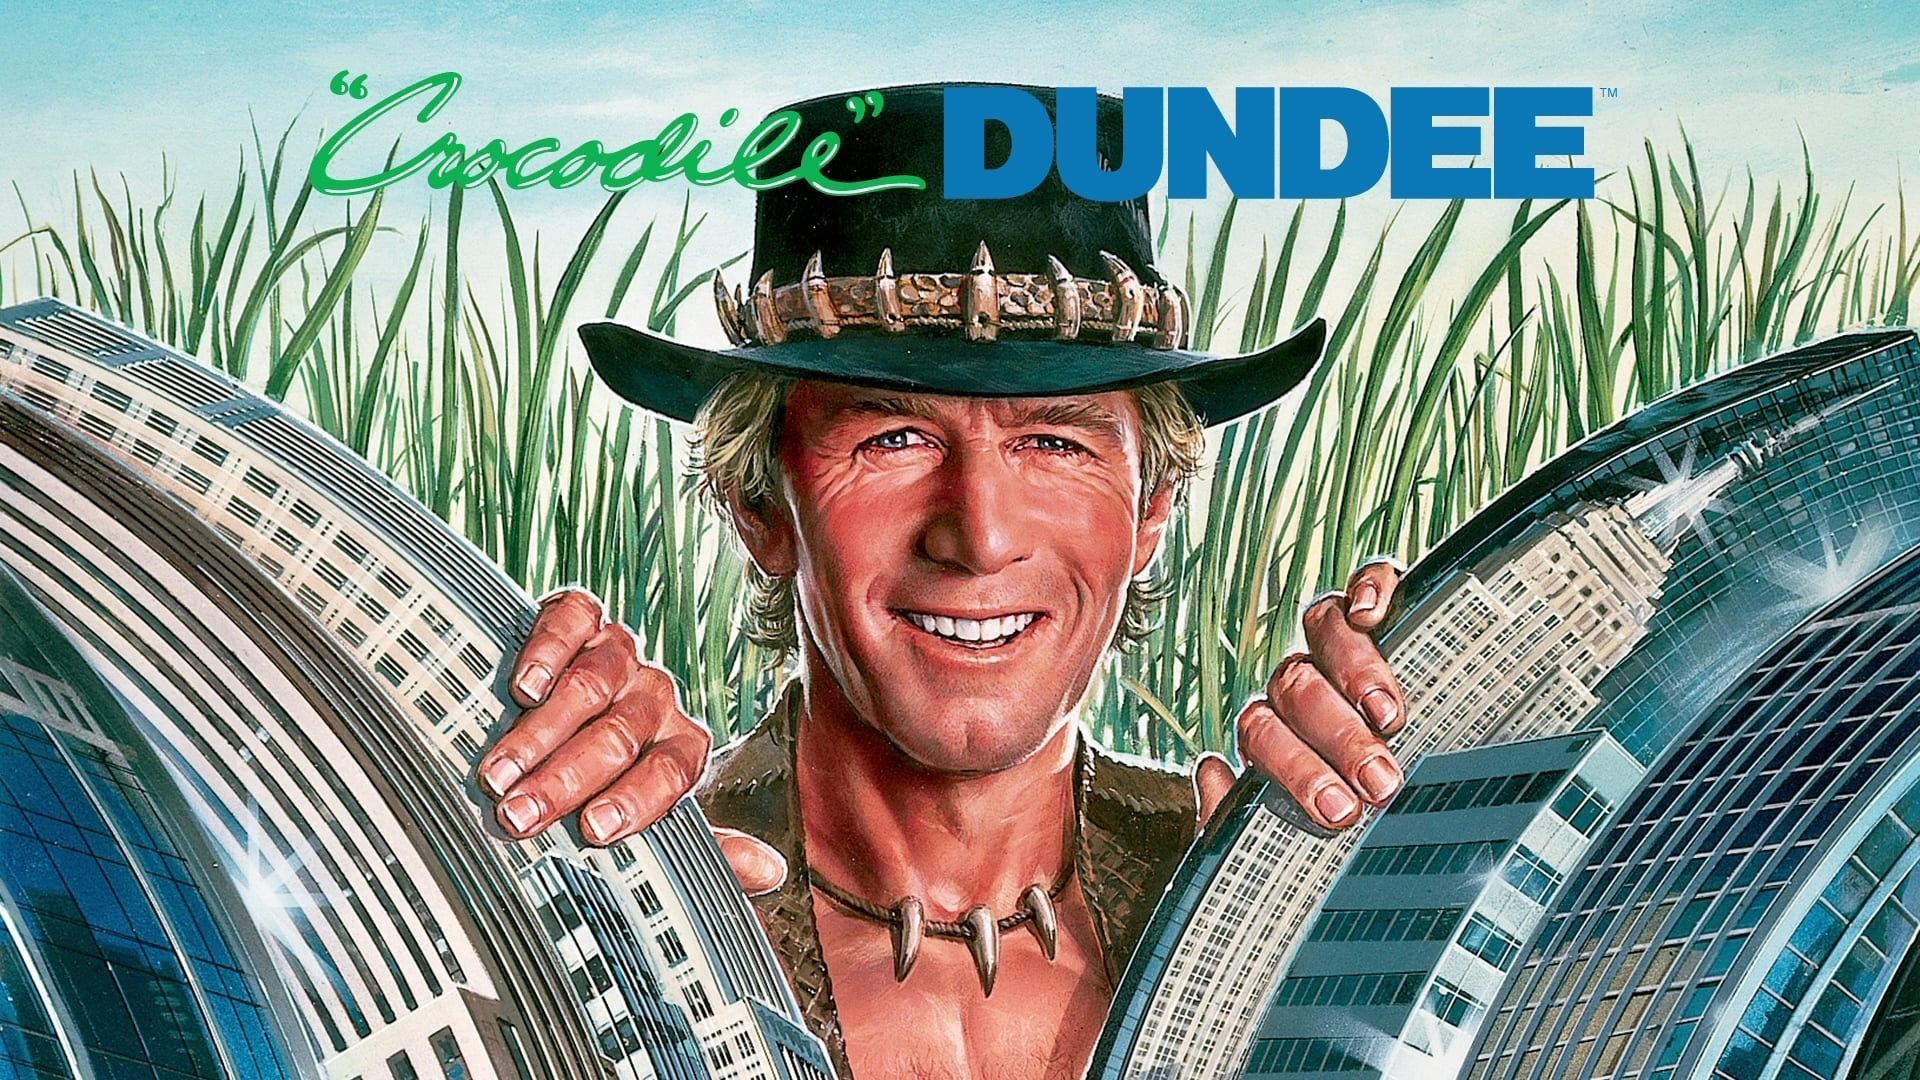 crocodile dundee Michael j crocodile dundee (alias mick) is an australian crocodile hunter he's the husband of sue charlton and the father of michael mikey dundee he is portrayed by none other than paul hogan supposedly dundee was born in a cave within the australian outback where he was found and raised.